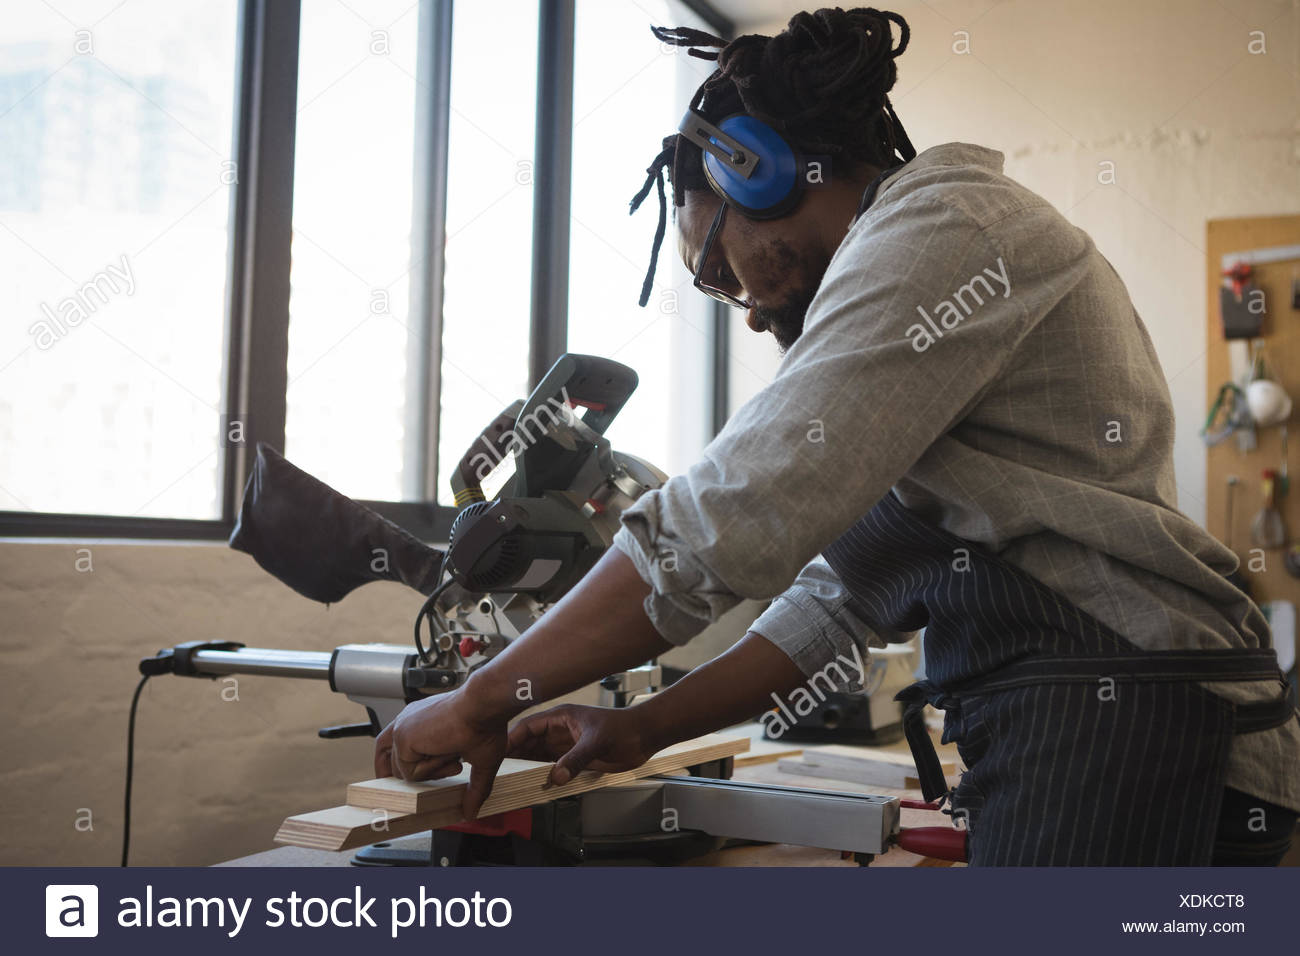 Carpenter cutting wooden plank with electric saw - Stock Image